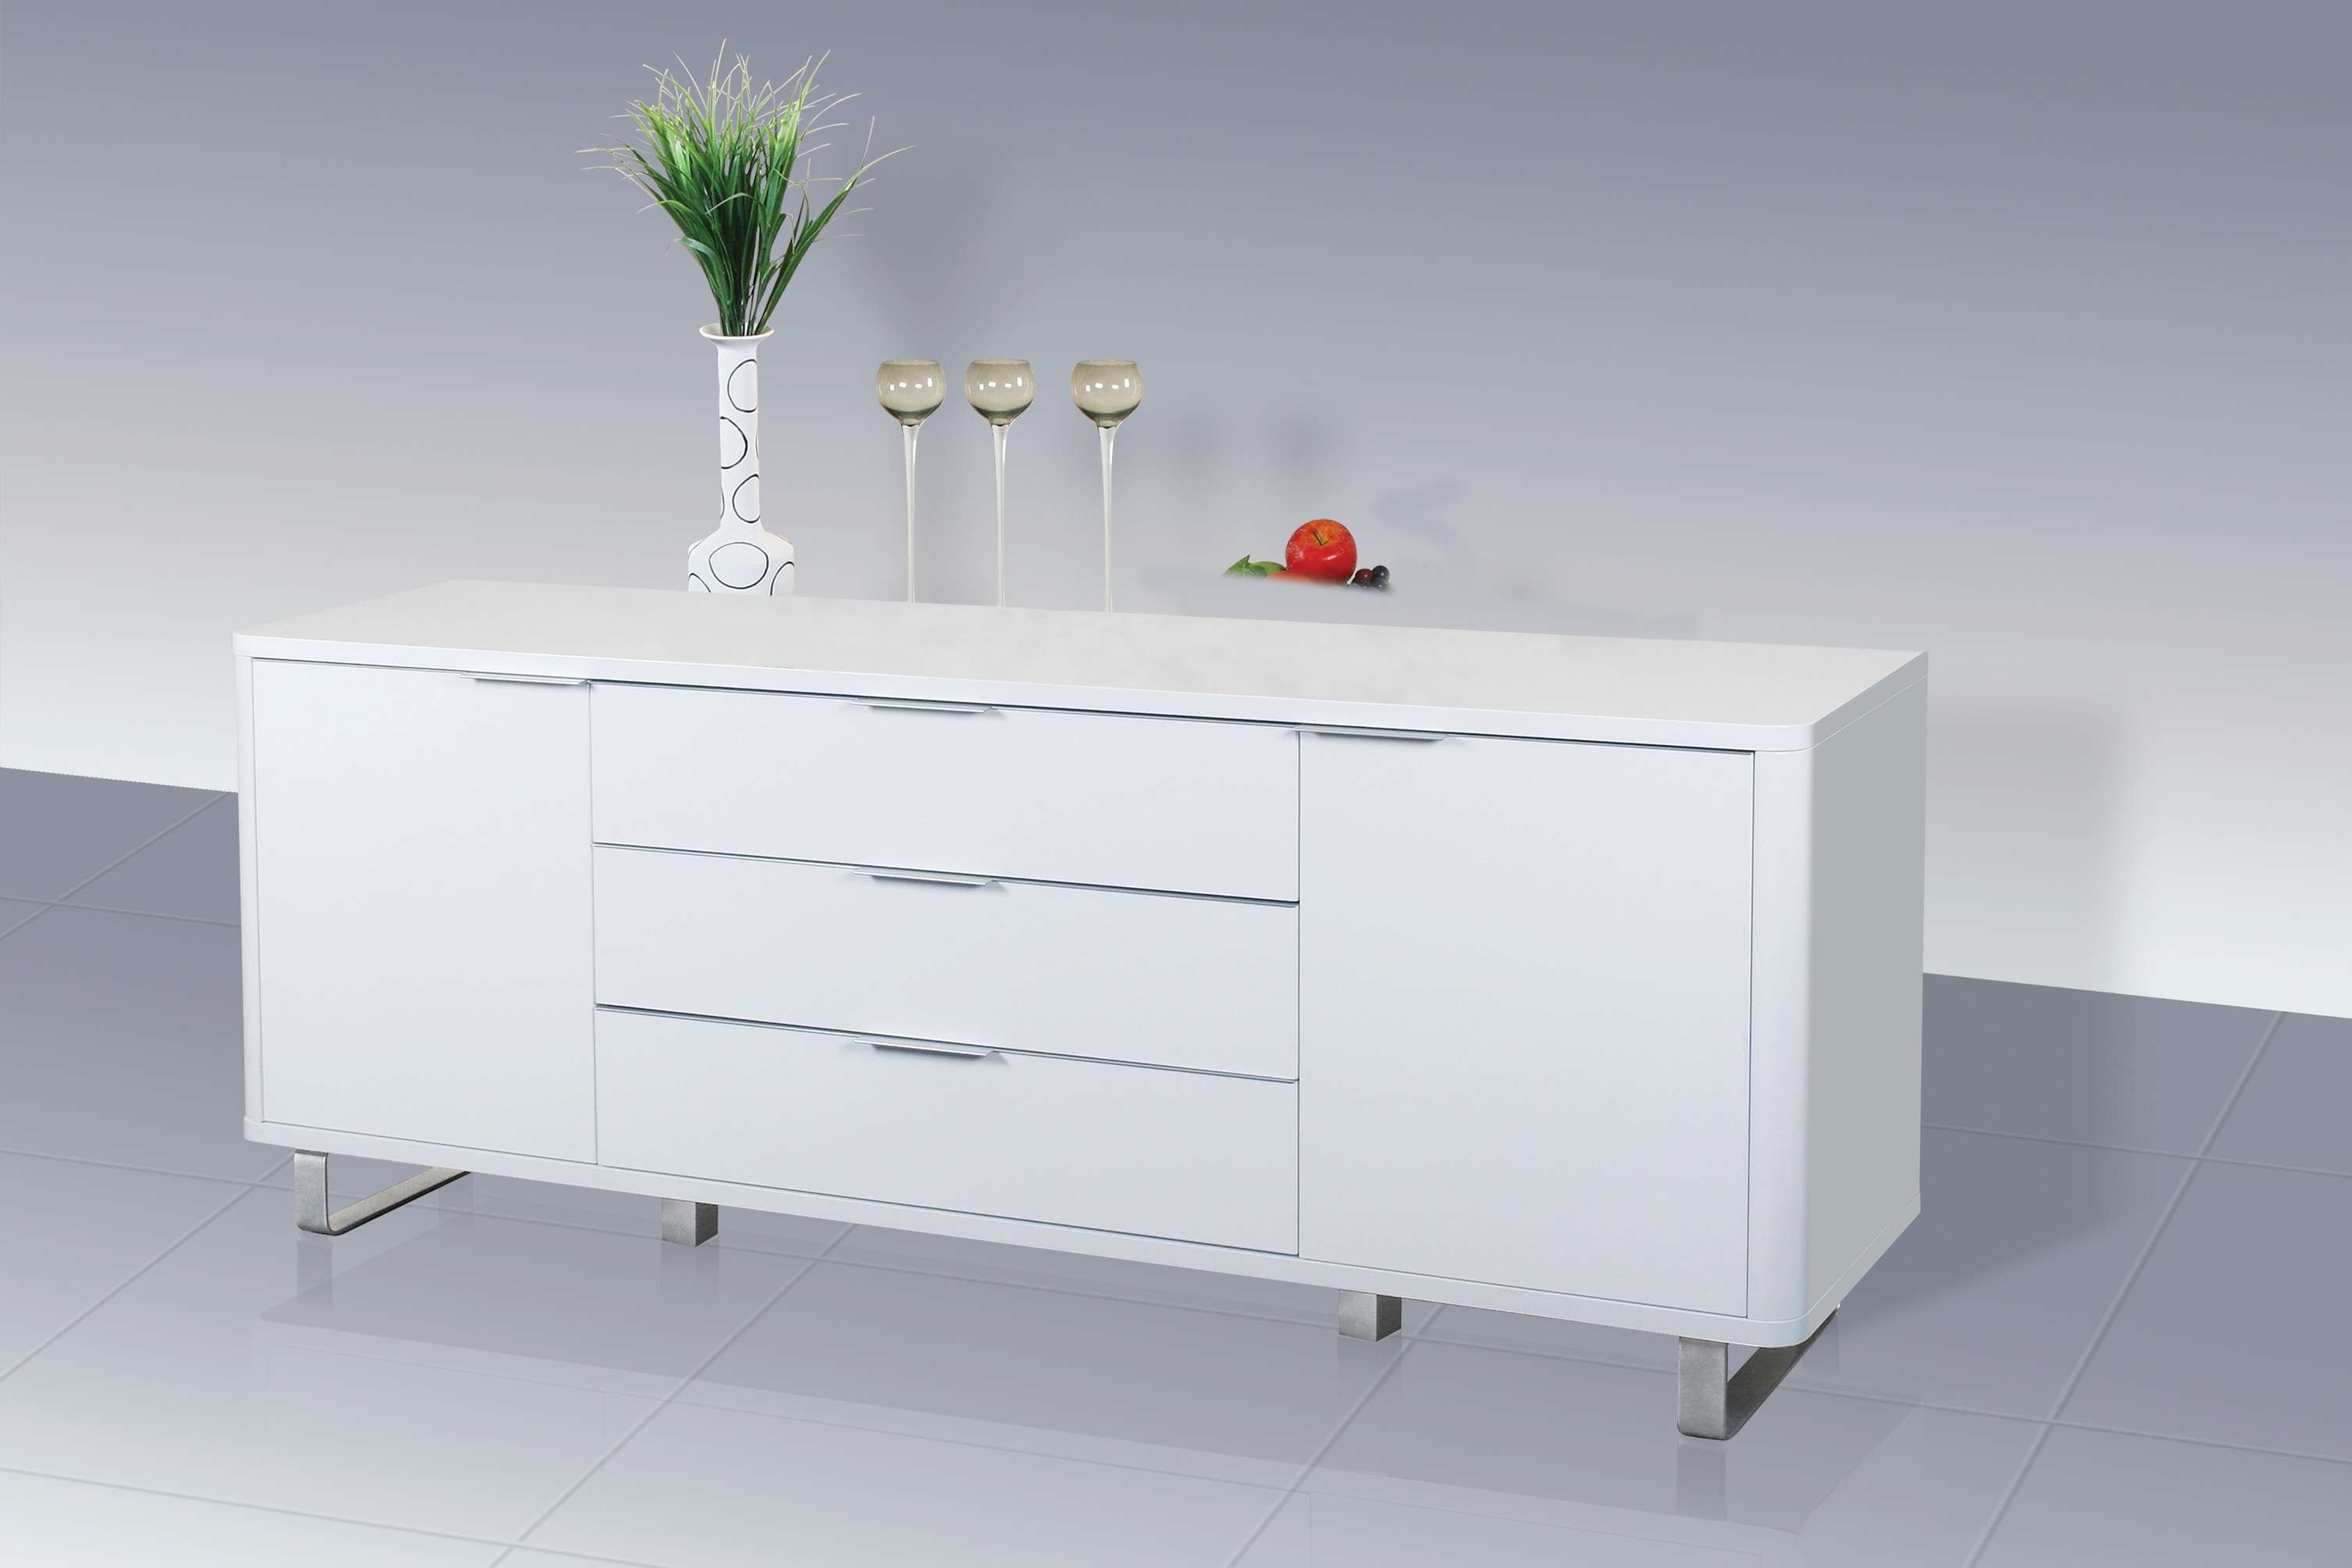 Amazing High Gloss Sideboard Uk – Buildsimplehome For Gloss Sideboards Furniture (View 1 of 20)